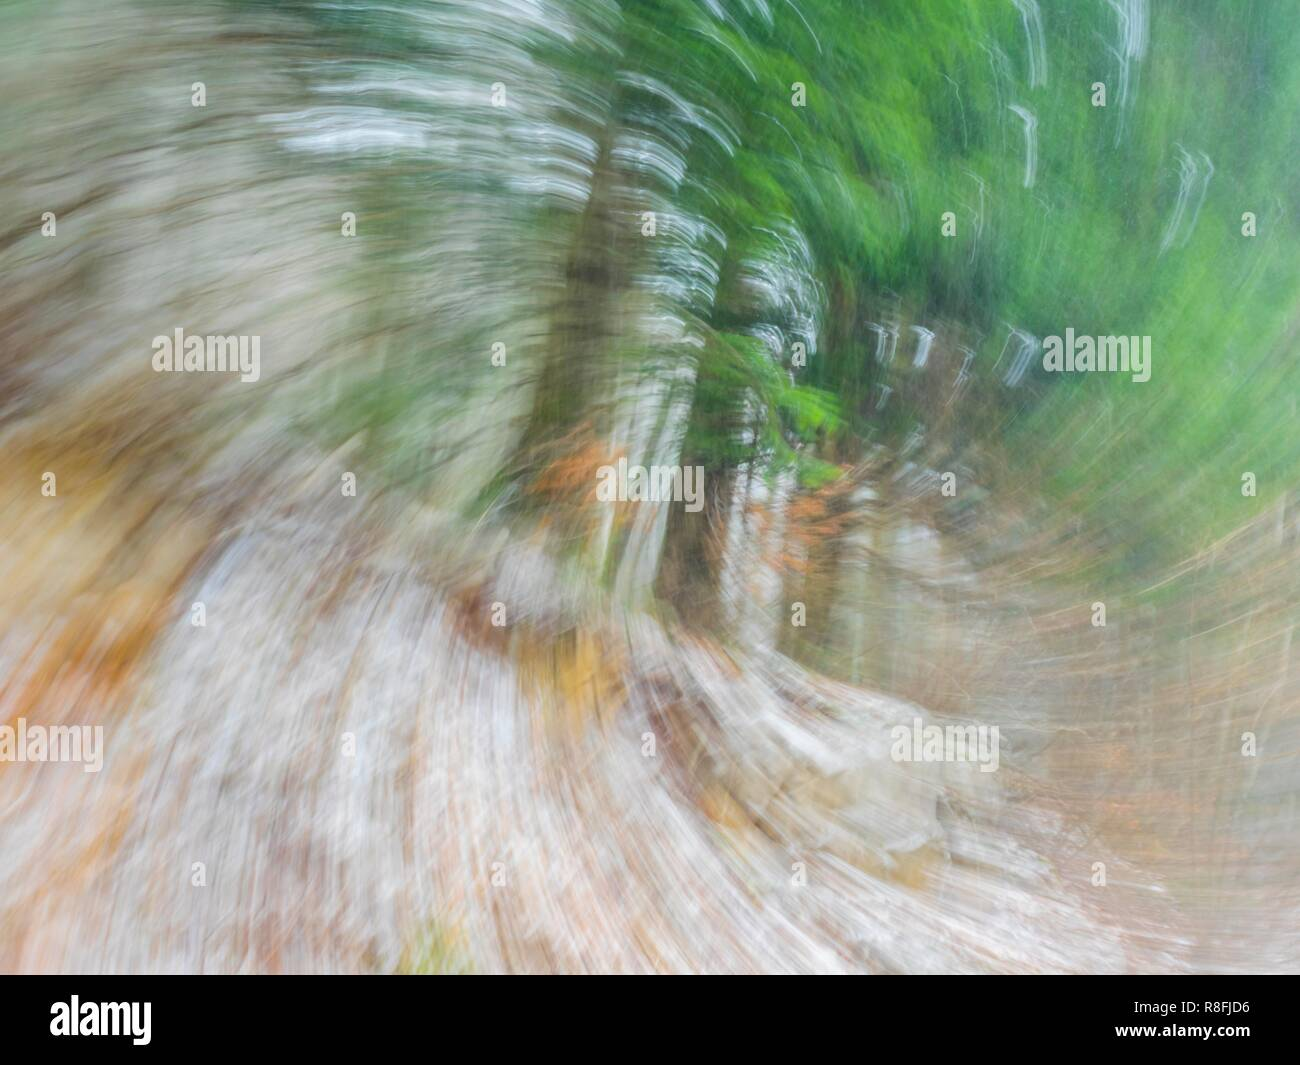 Circular blur motion forest trees - Stock Image